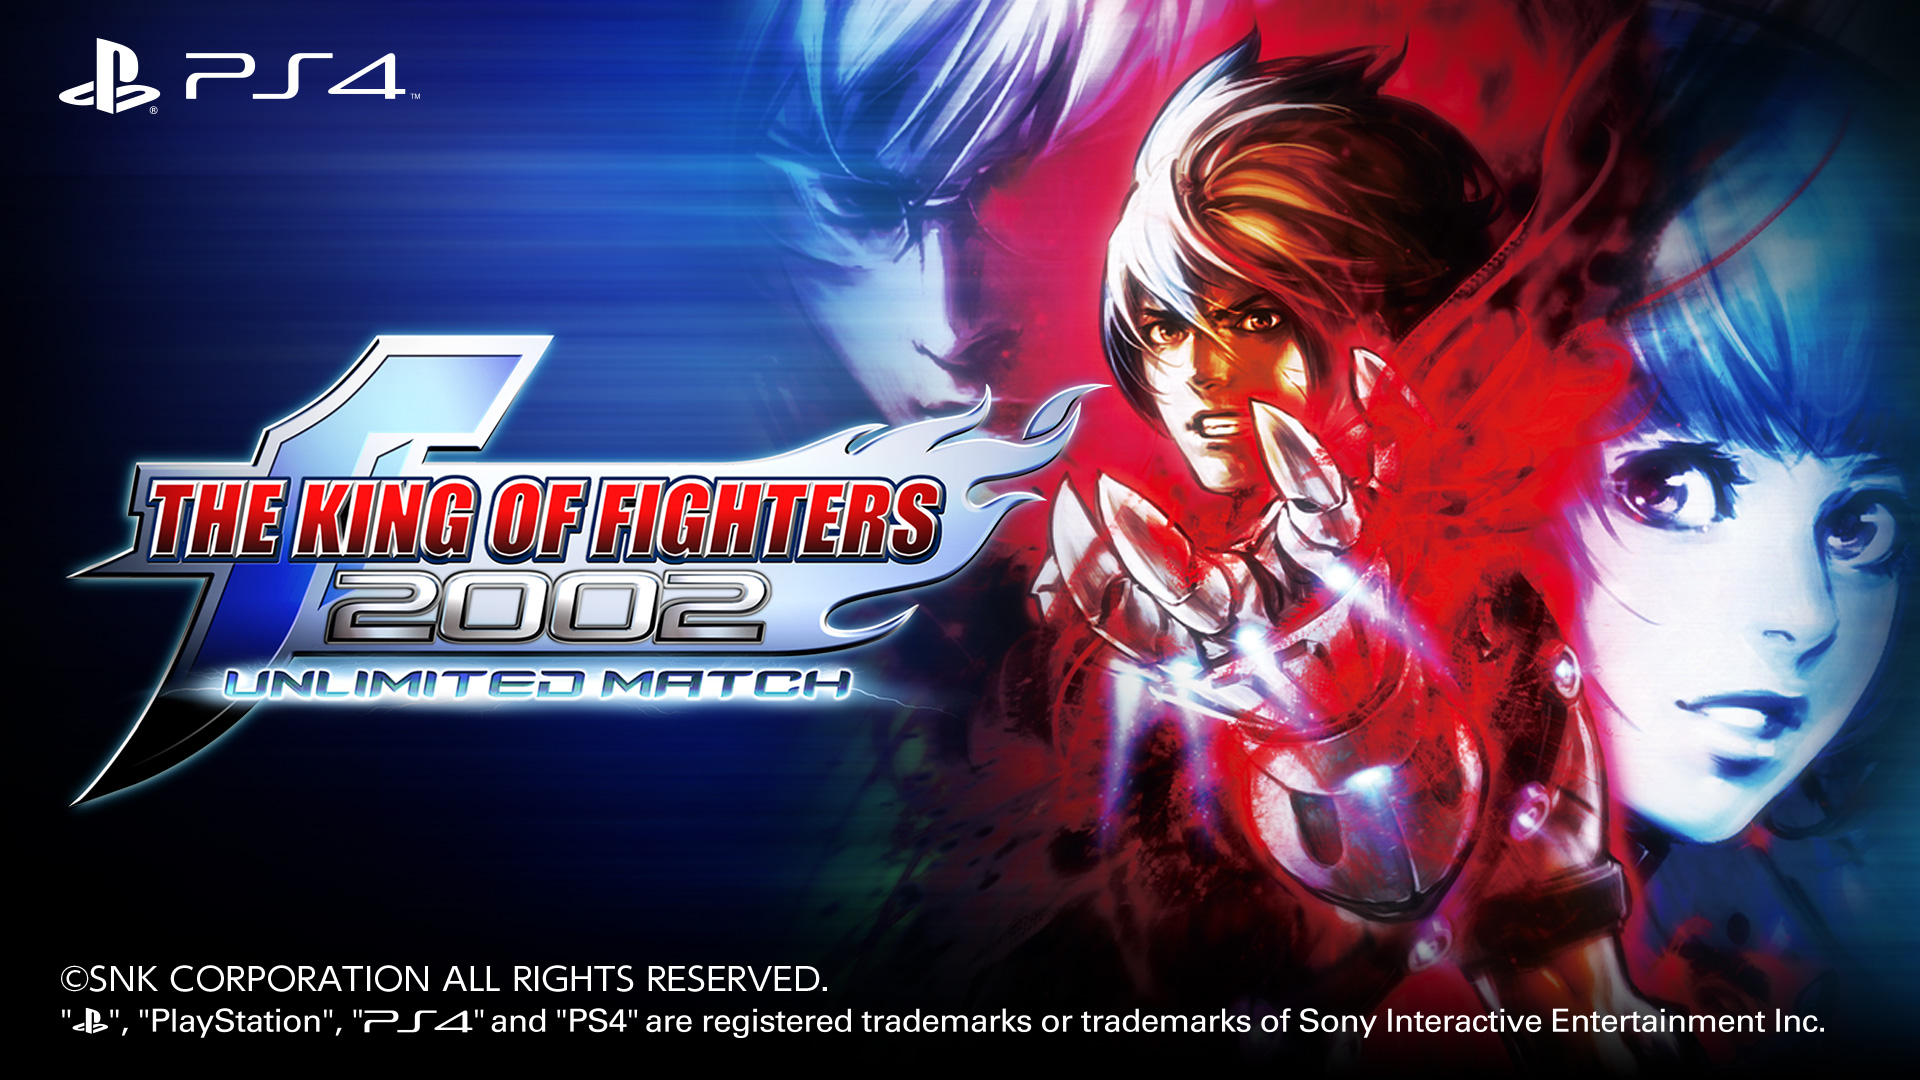 king of fighters 2002 unlimited match ps4